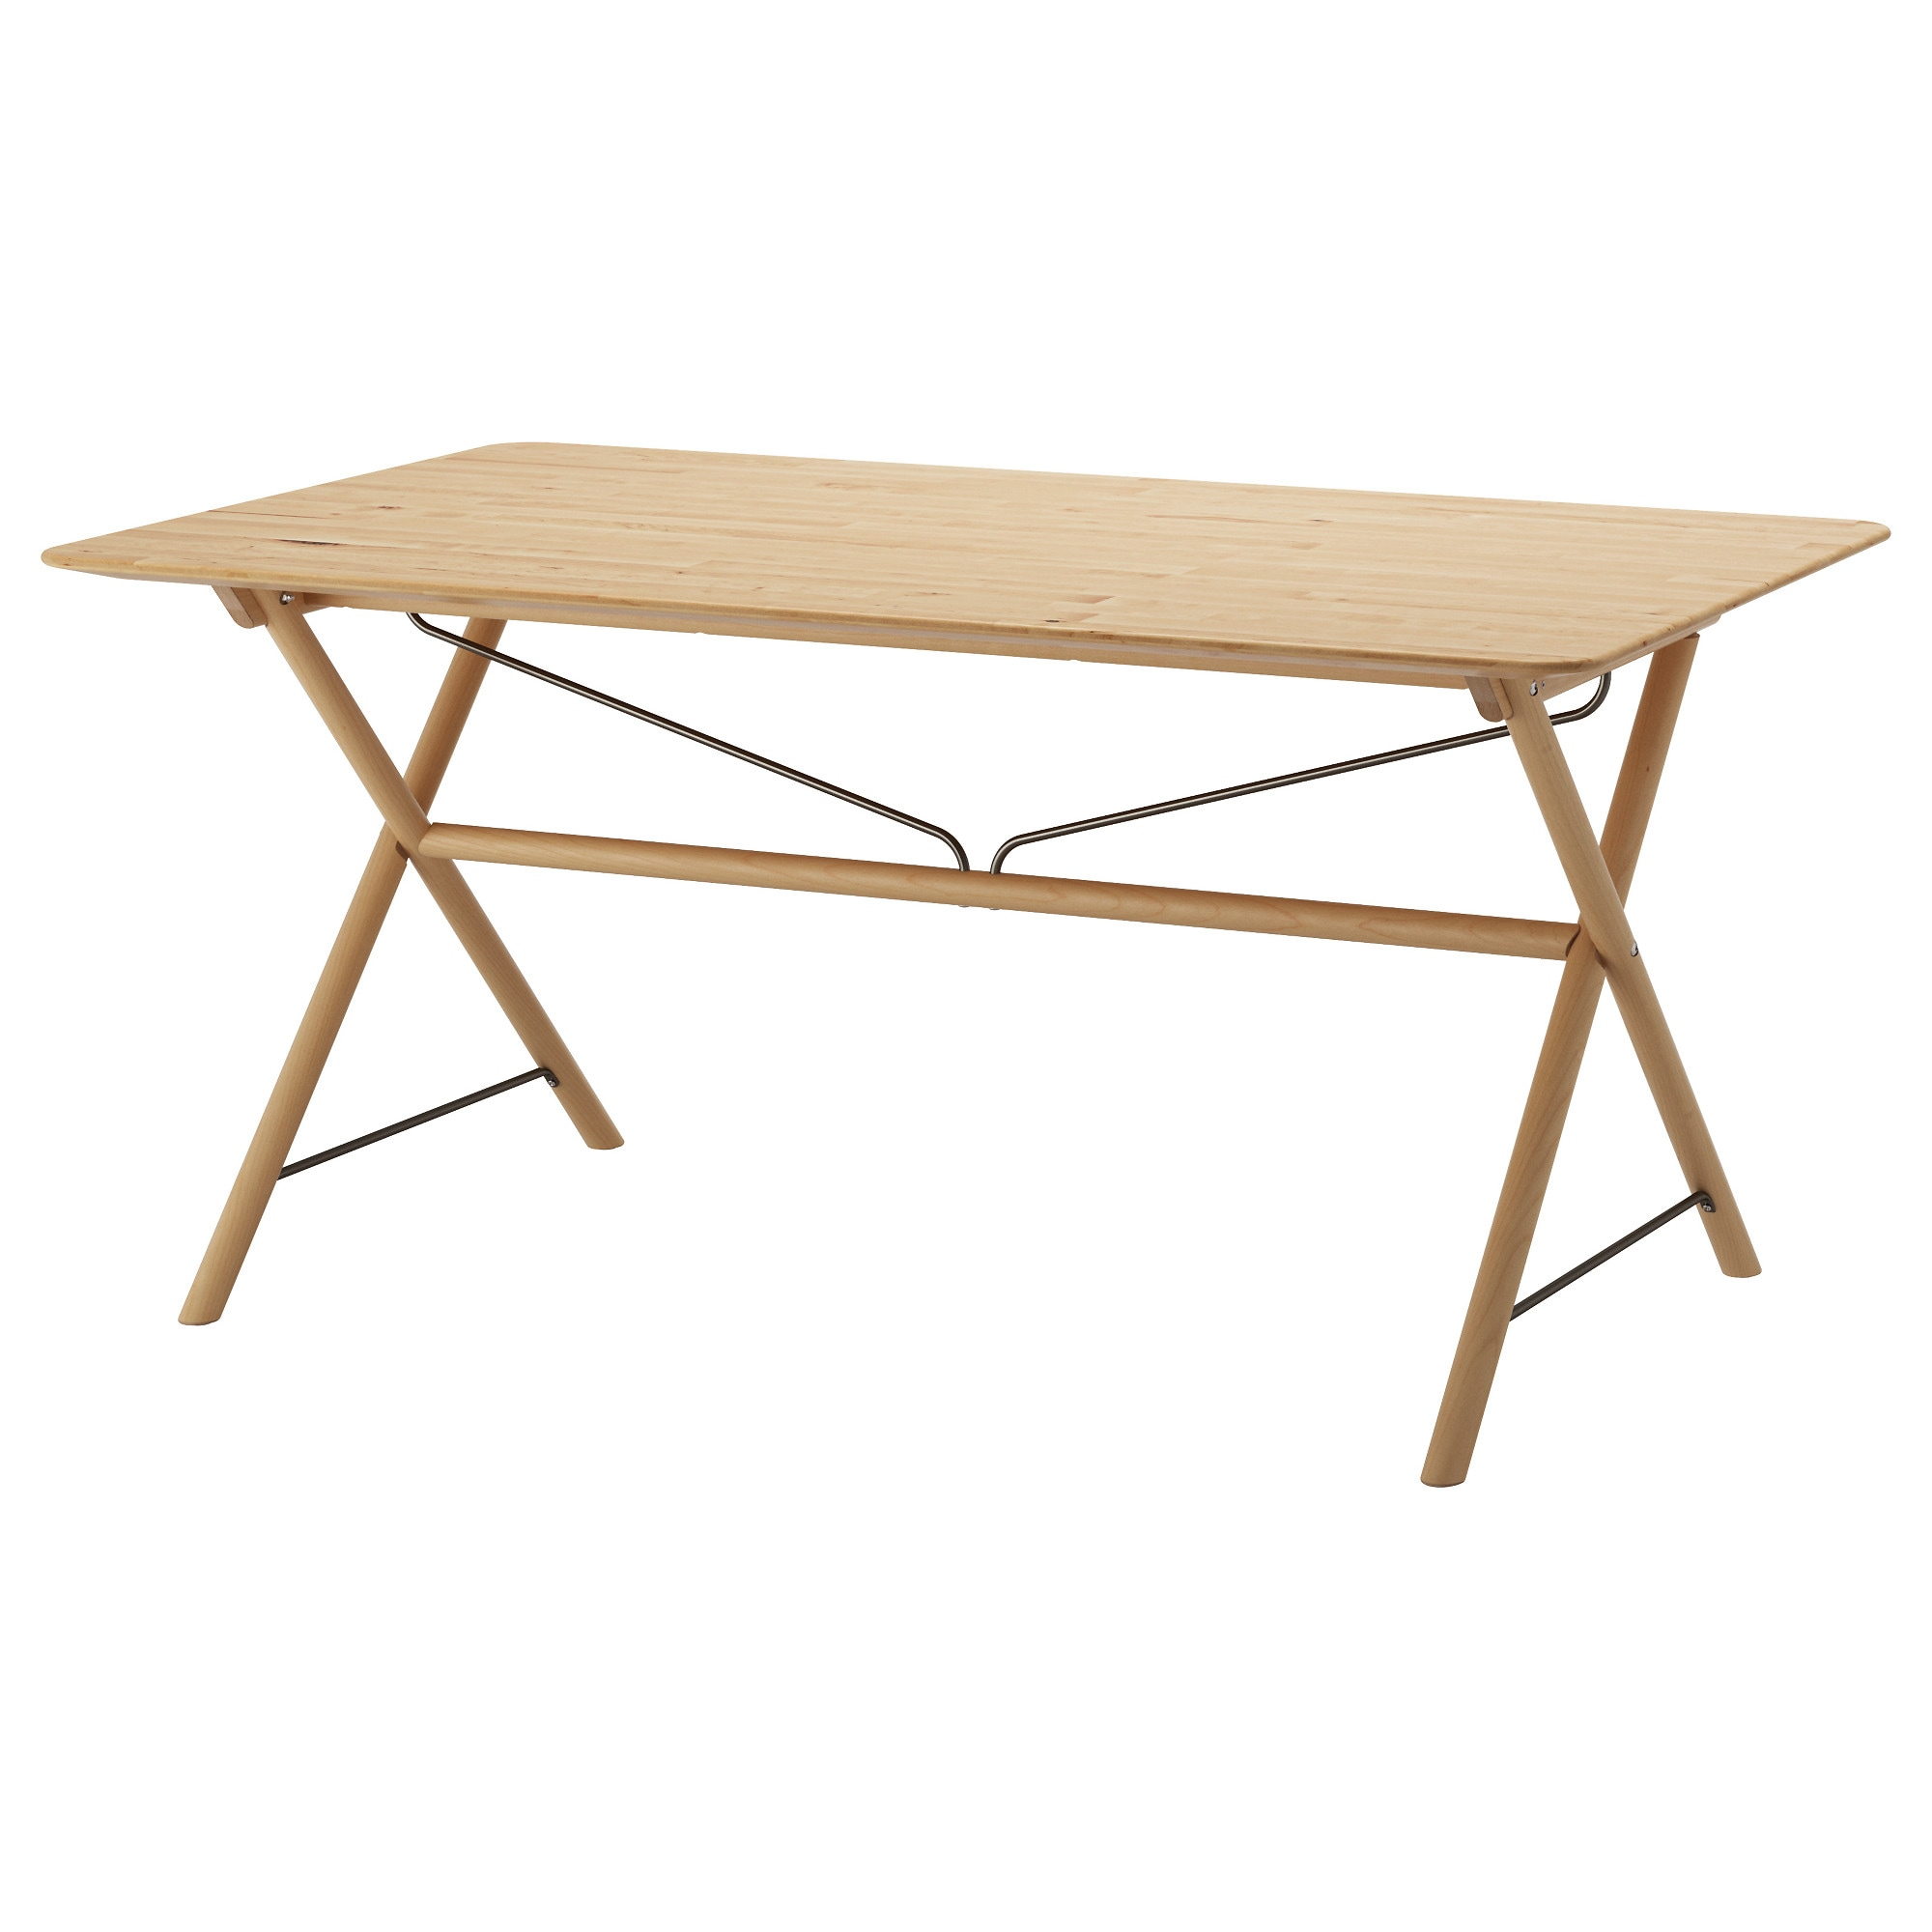 Table carree 8 personnes ikea 28 images pin table for Table 8 personnes